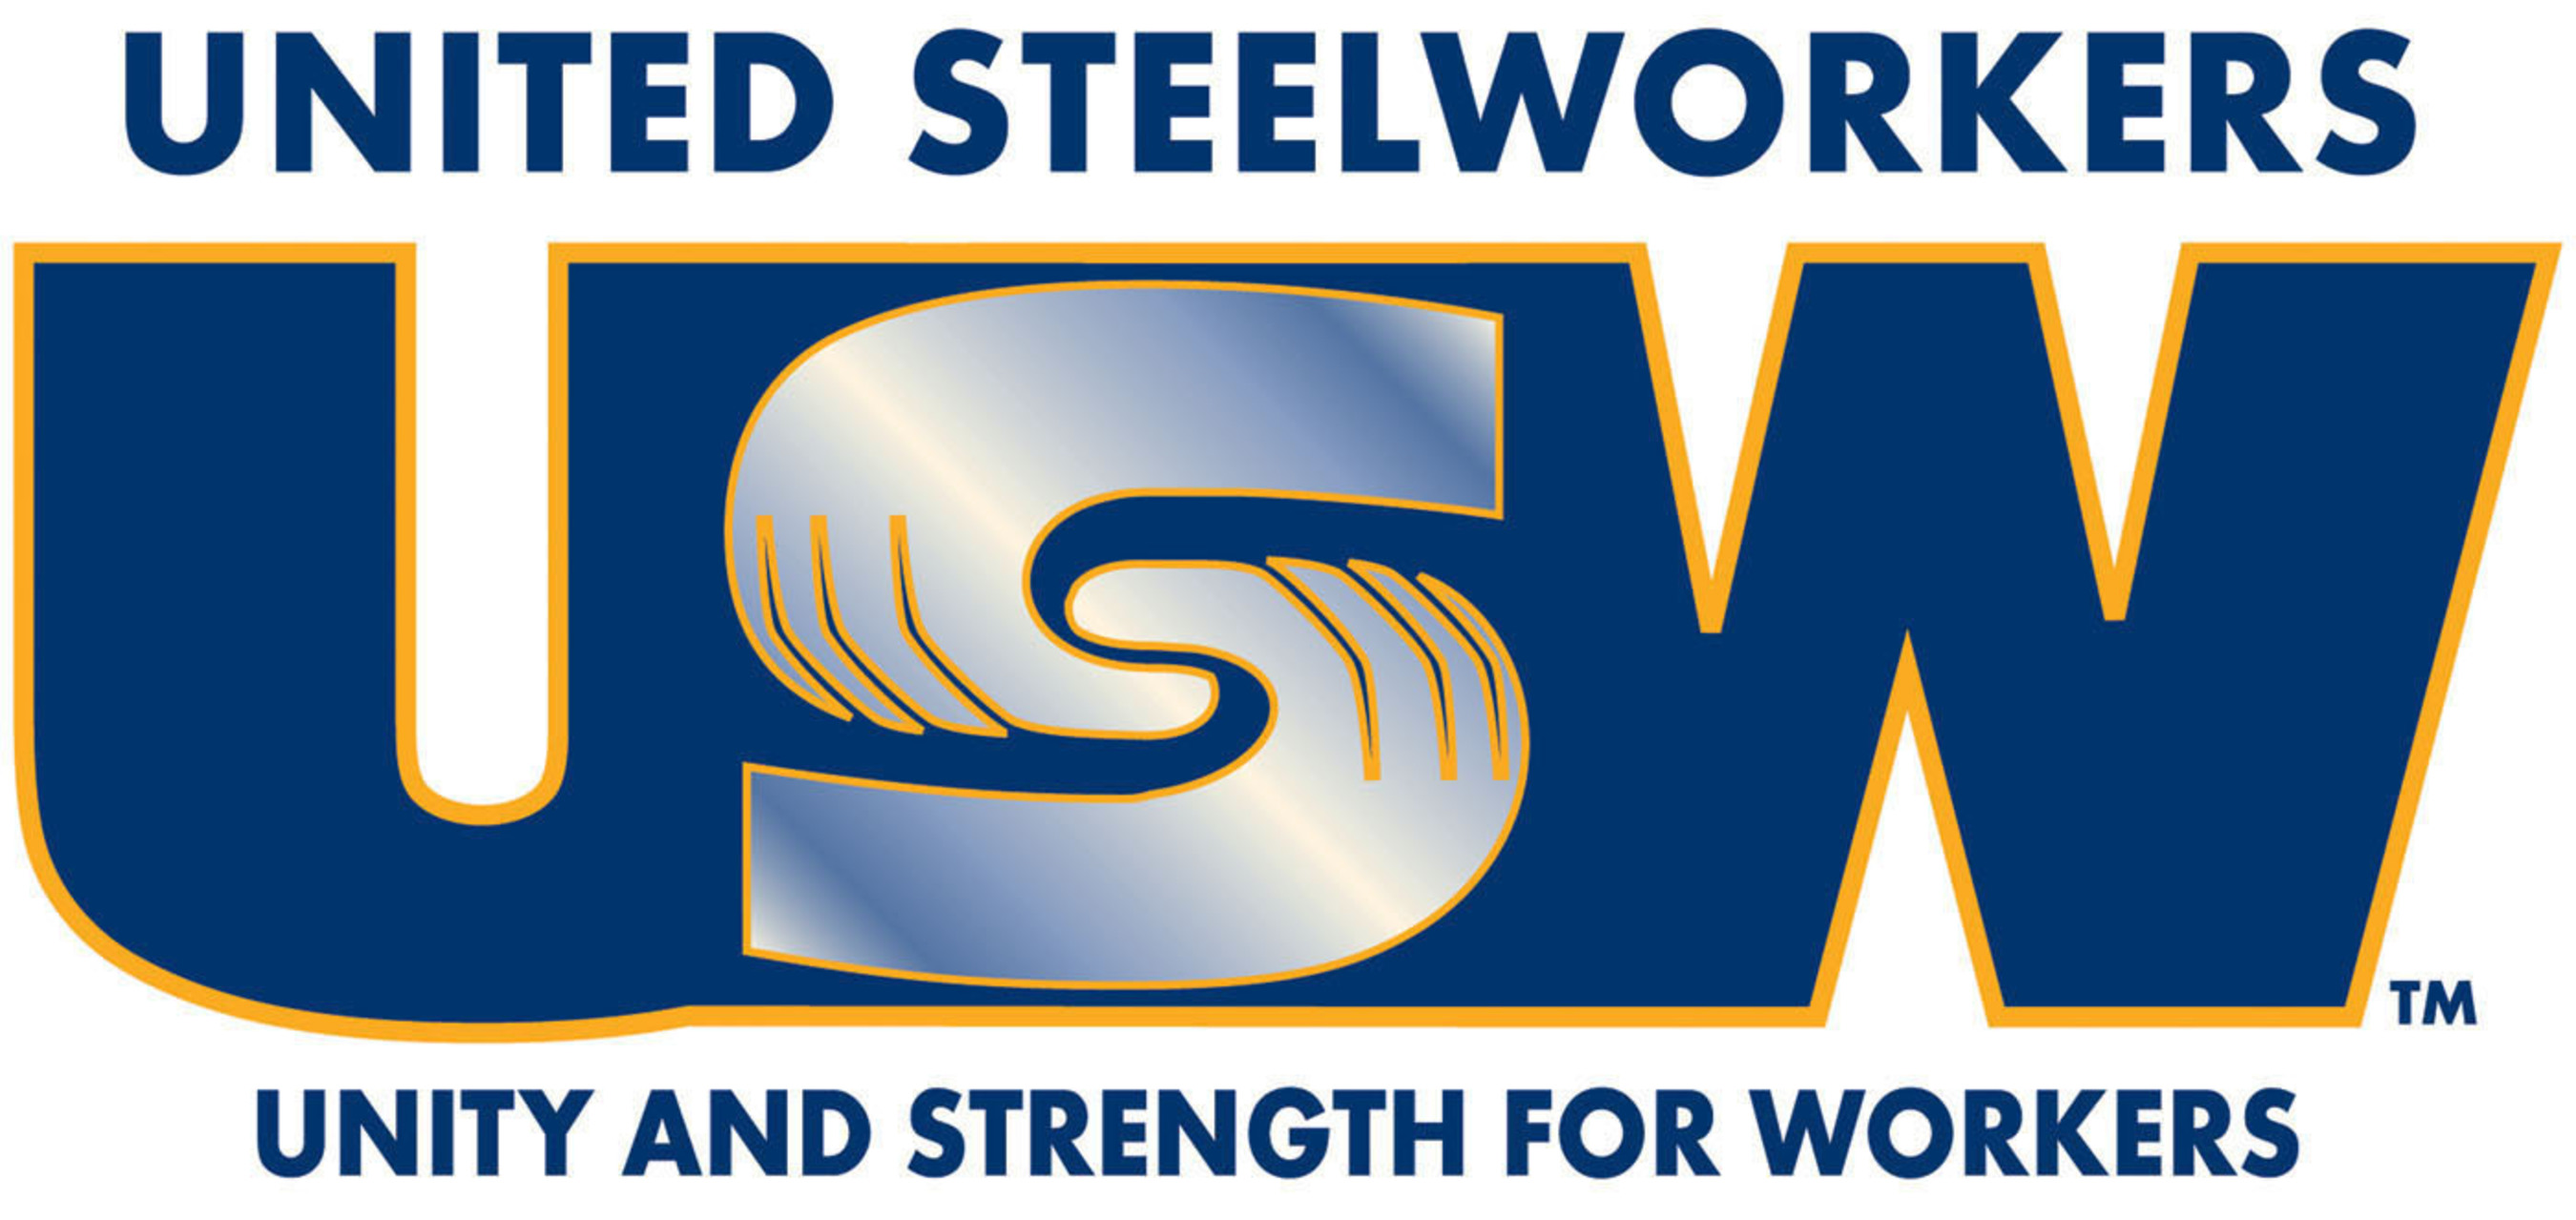 United Steelworkers (USW)